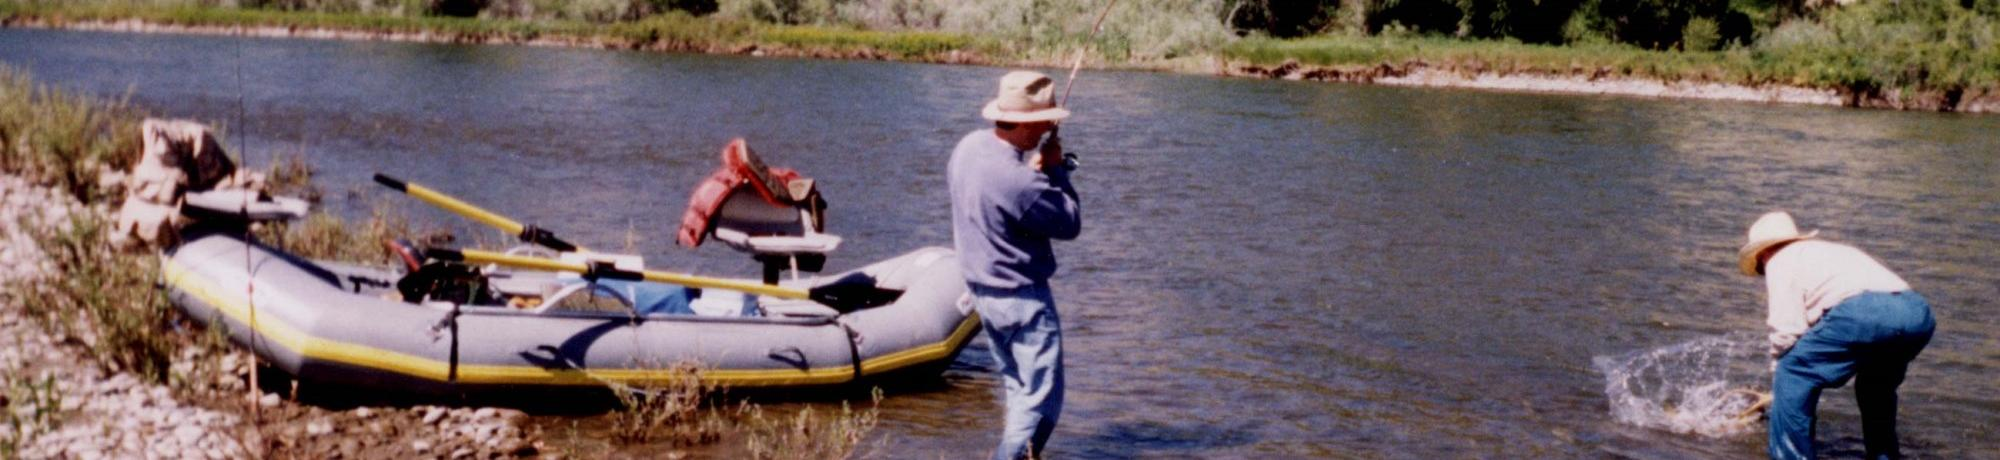 Dr. David Mills fishing